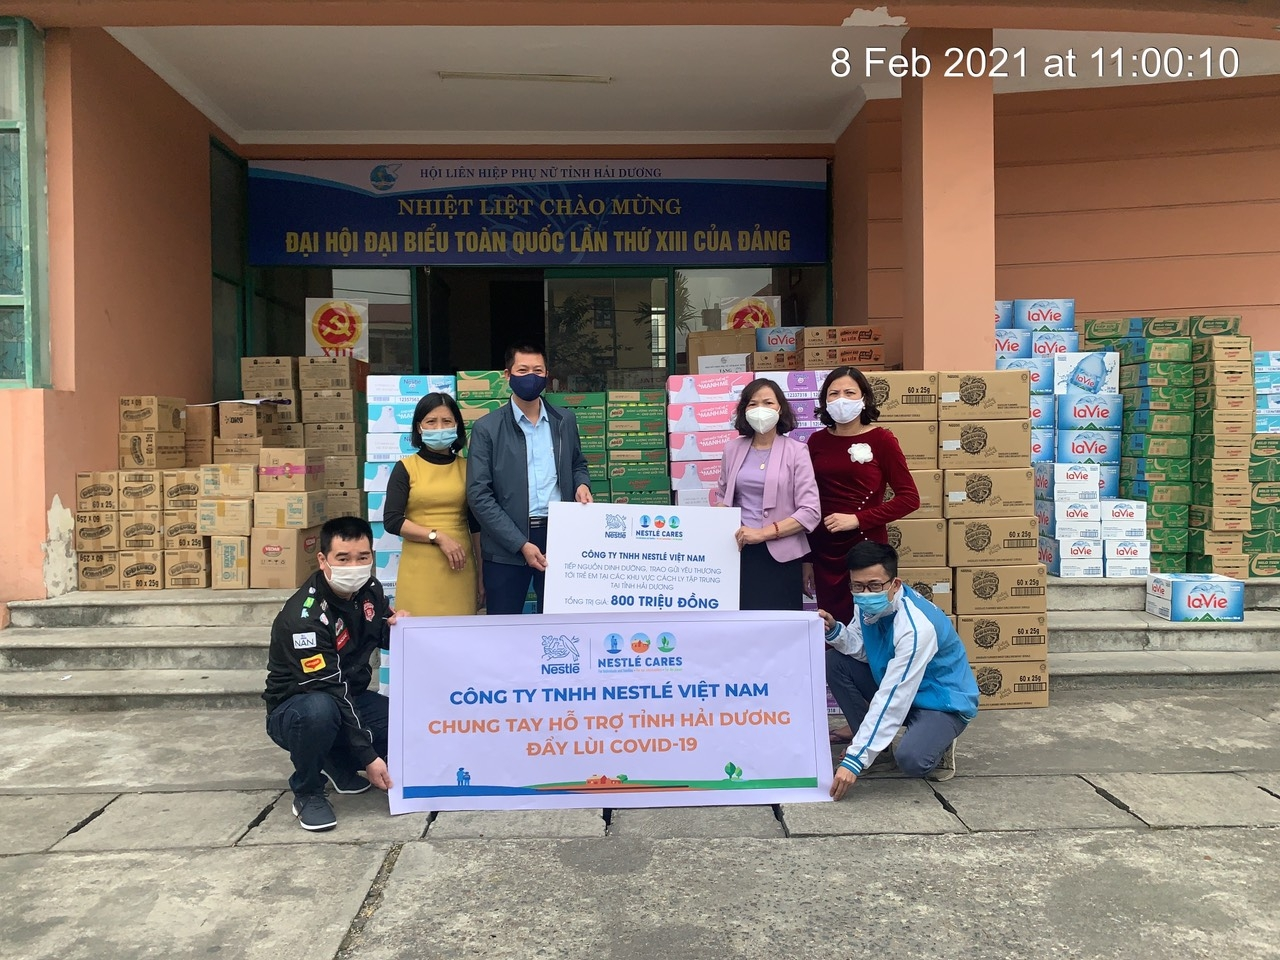 nestle vietnam gifts 100000 nutritional products to children in covid 19 danger zones